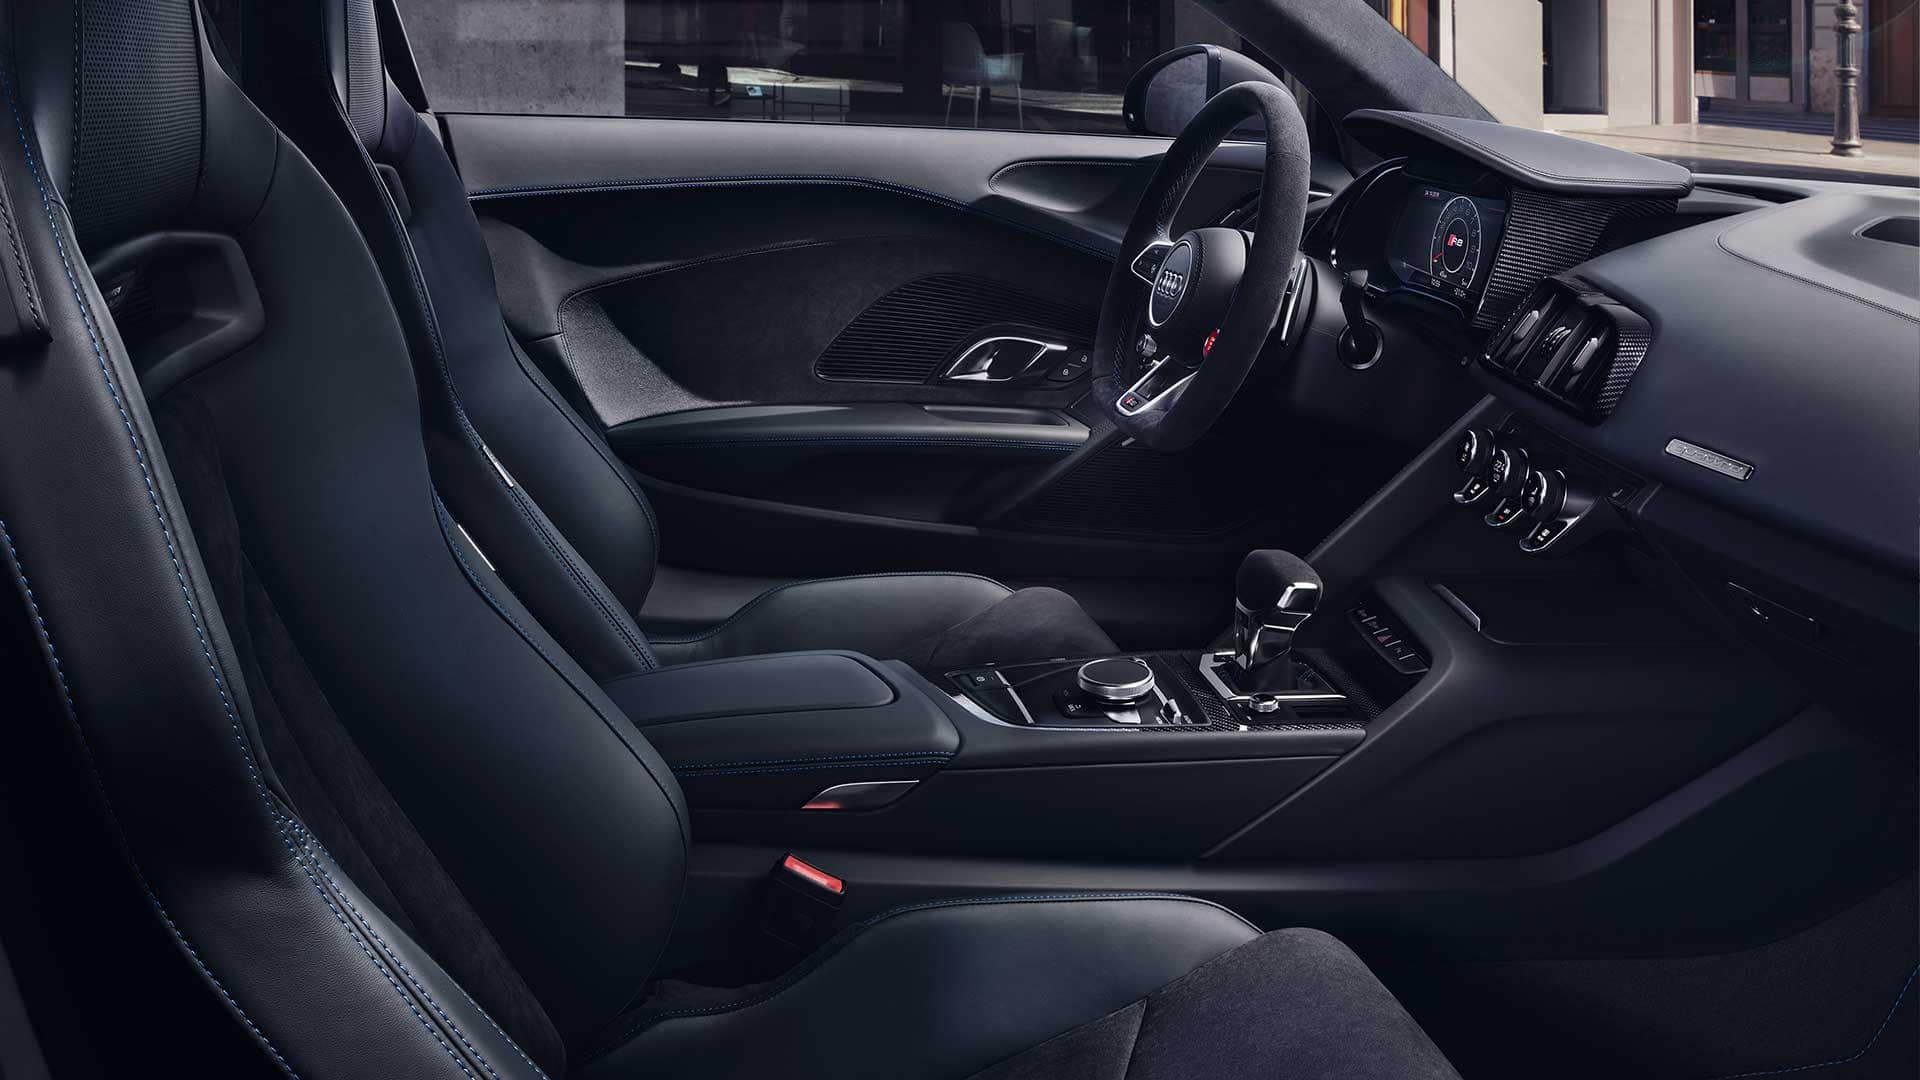 Interior Audi R8 Coupé V10 performance quattro